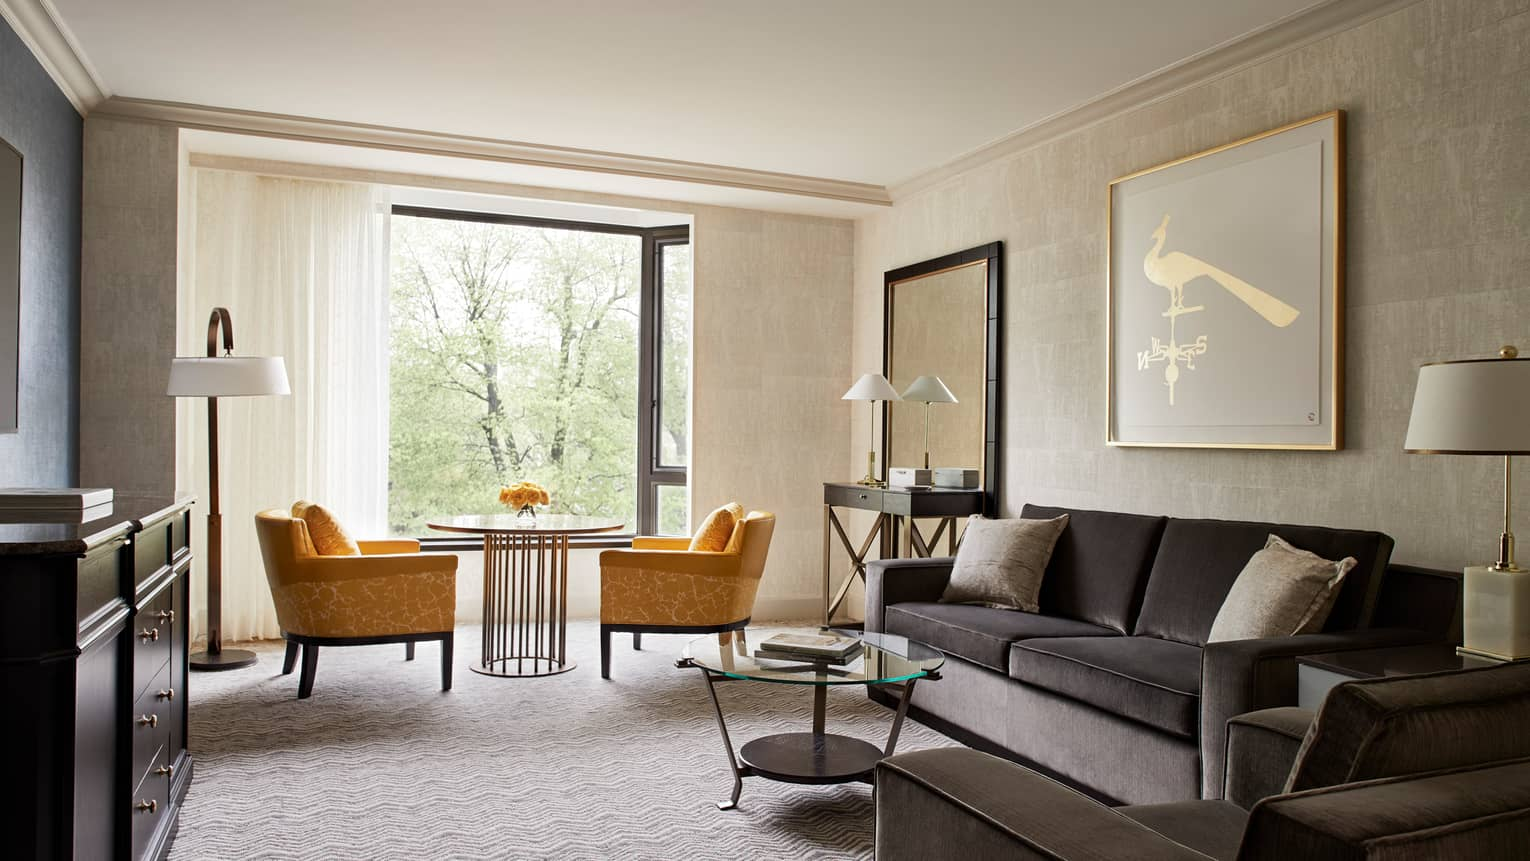 Garden View Executive Suite grey velvet sofa and armchair, golden yellow plush armchairs beside bright window